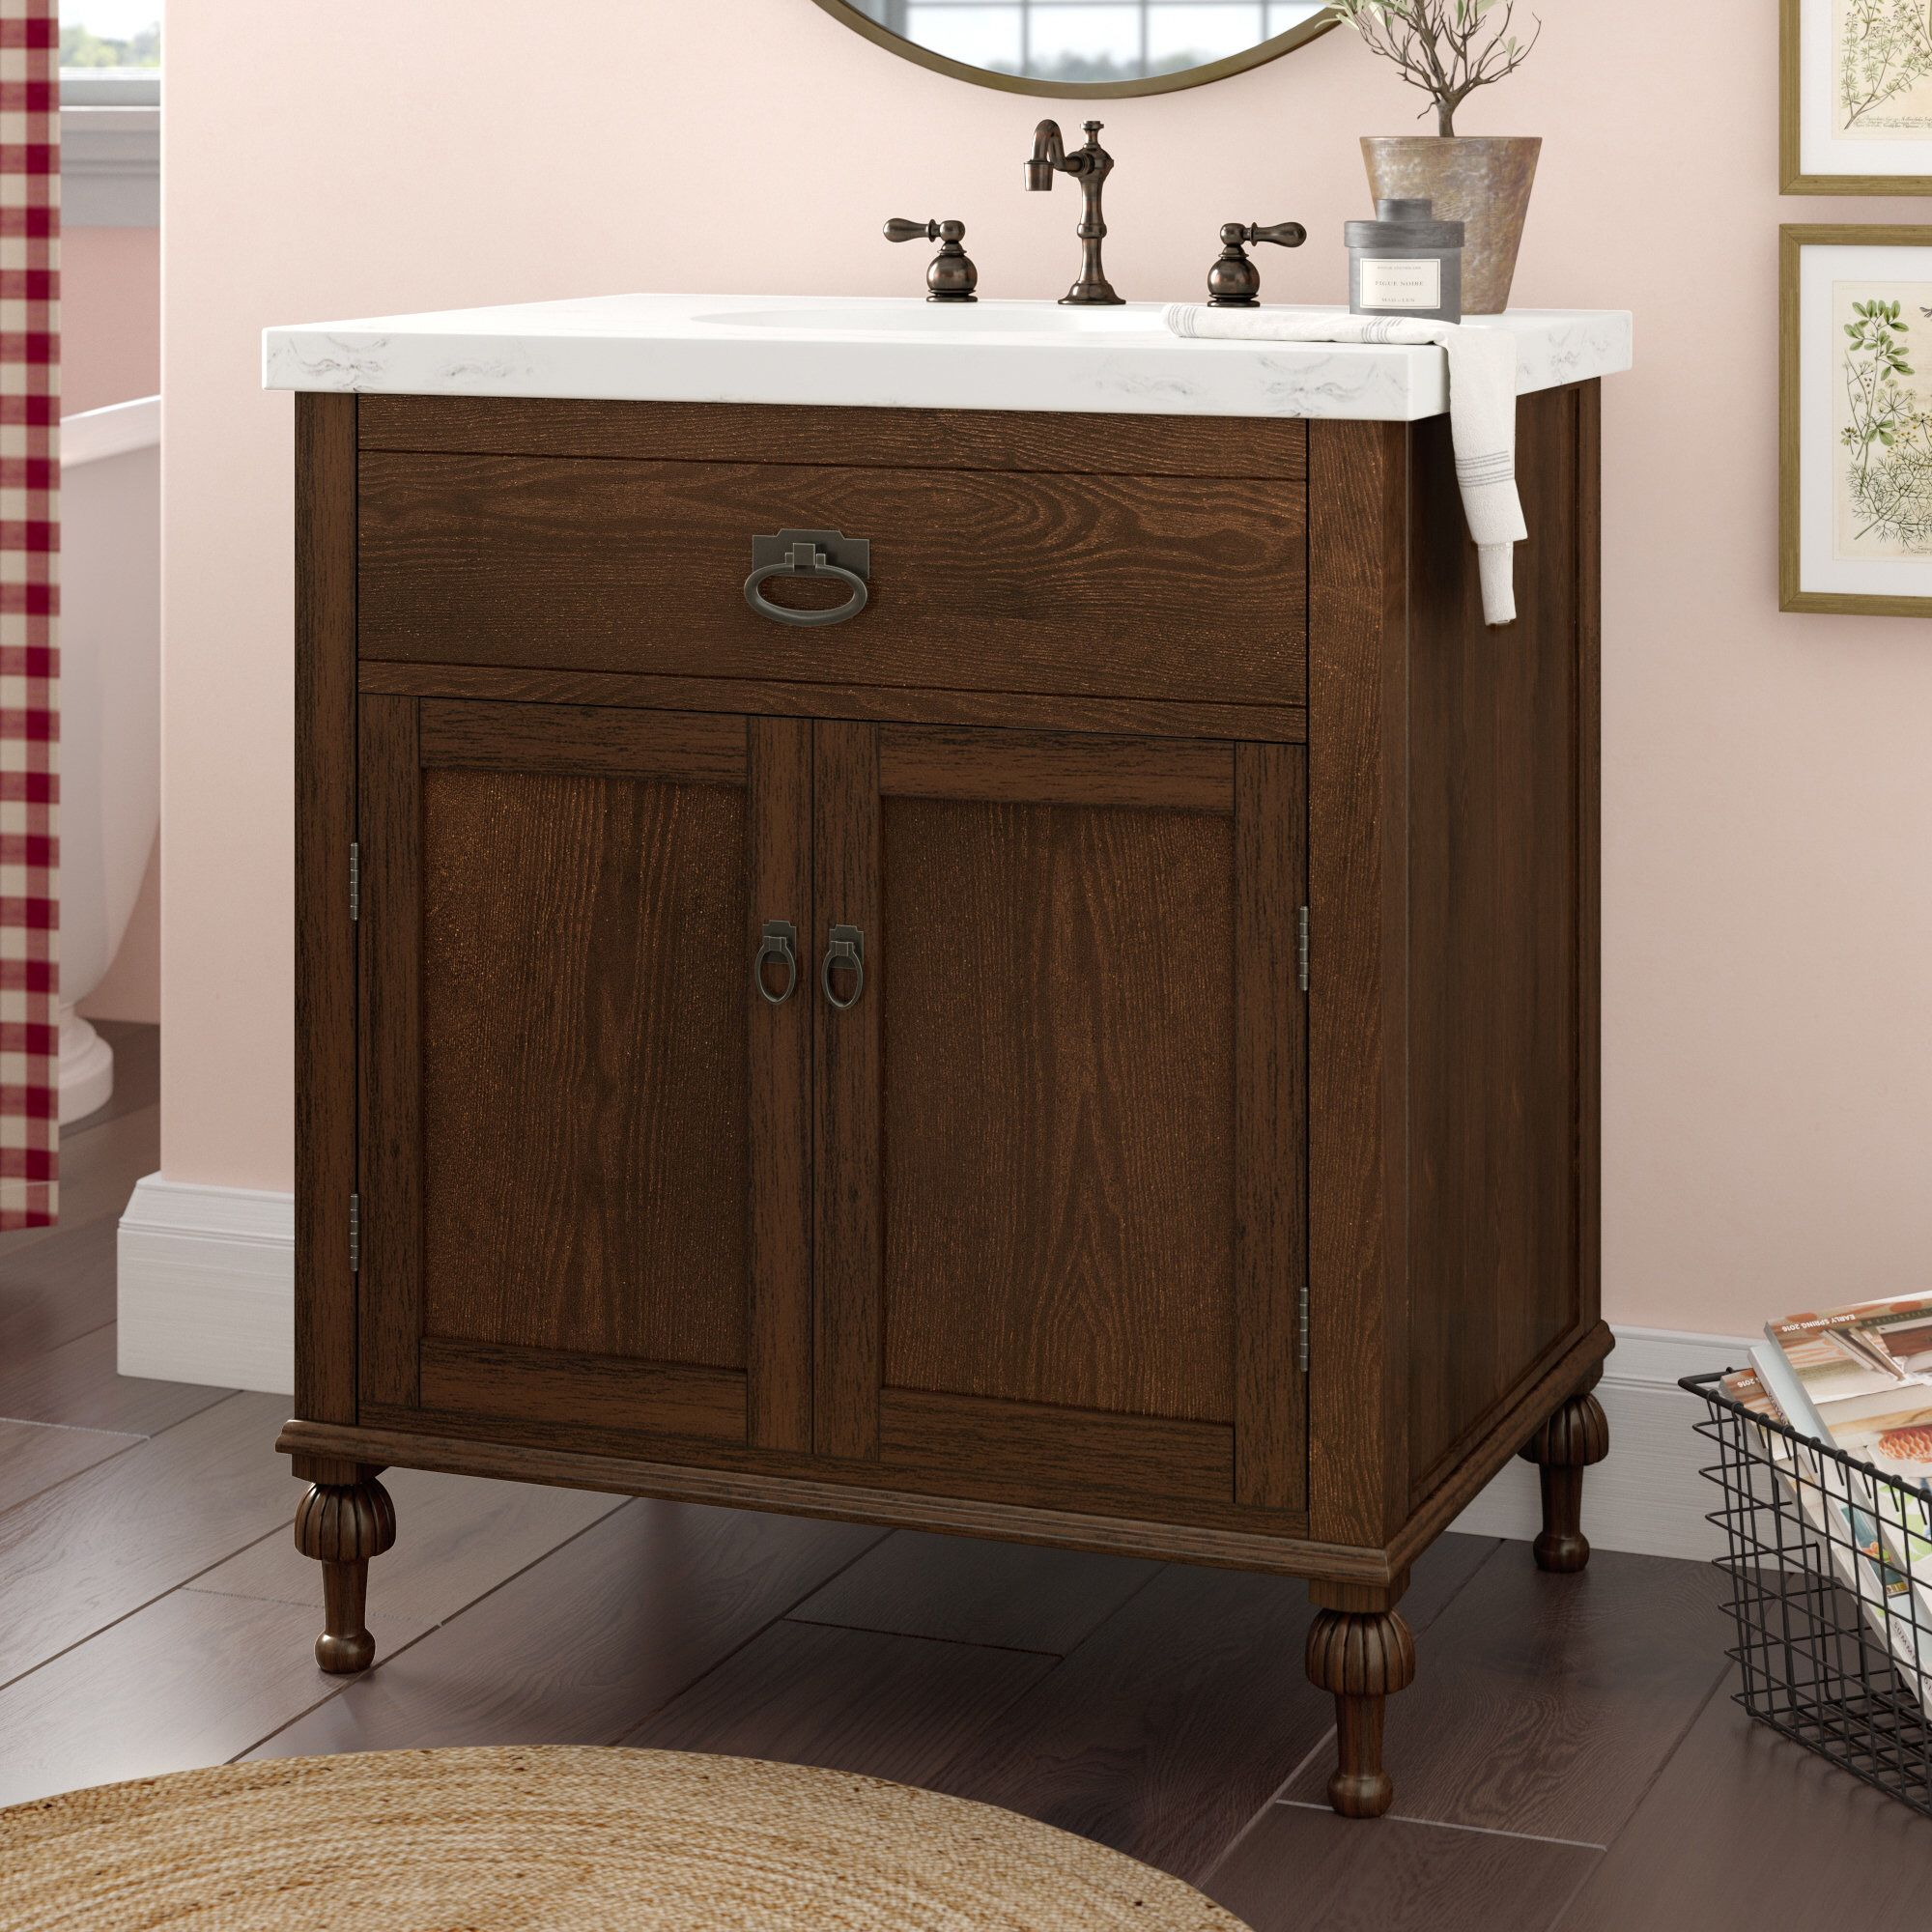 "Roseberry 30"" Single Bathroom Vanity Set Bathroom vanity"